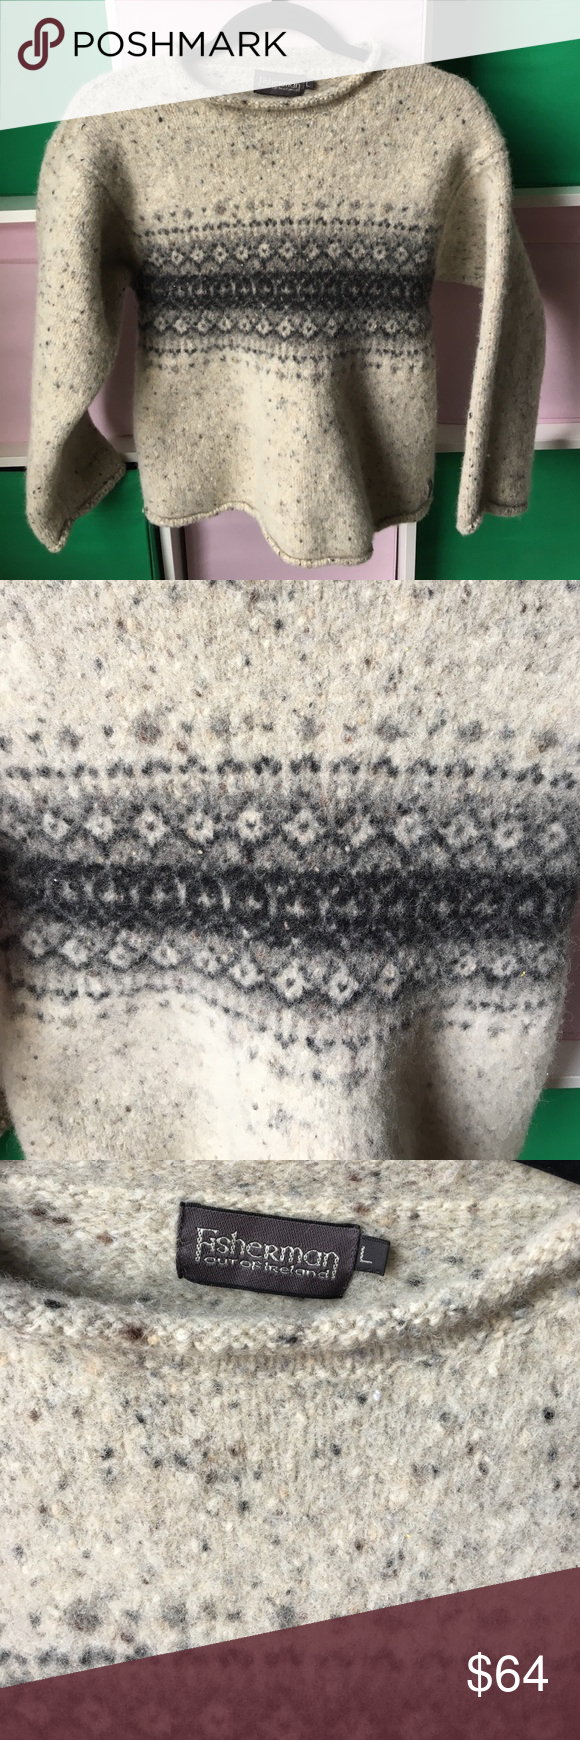 100% wool Fisherman out of Ireland Sweater ☘️ Luck o the Irish in this beautiful 100% pure new wool sweater. Beautiful grey celtic design. No piling. Soft. Purchased in Ireland. Lovely for any emerald isle wanderer or lover fisherman out of ireland Sweaters